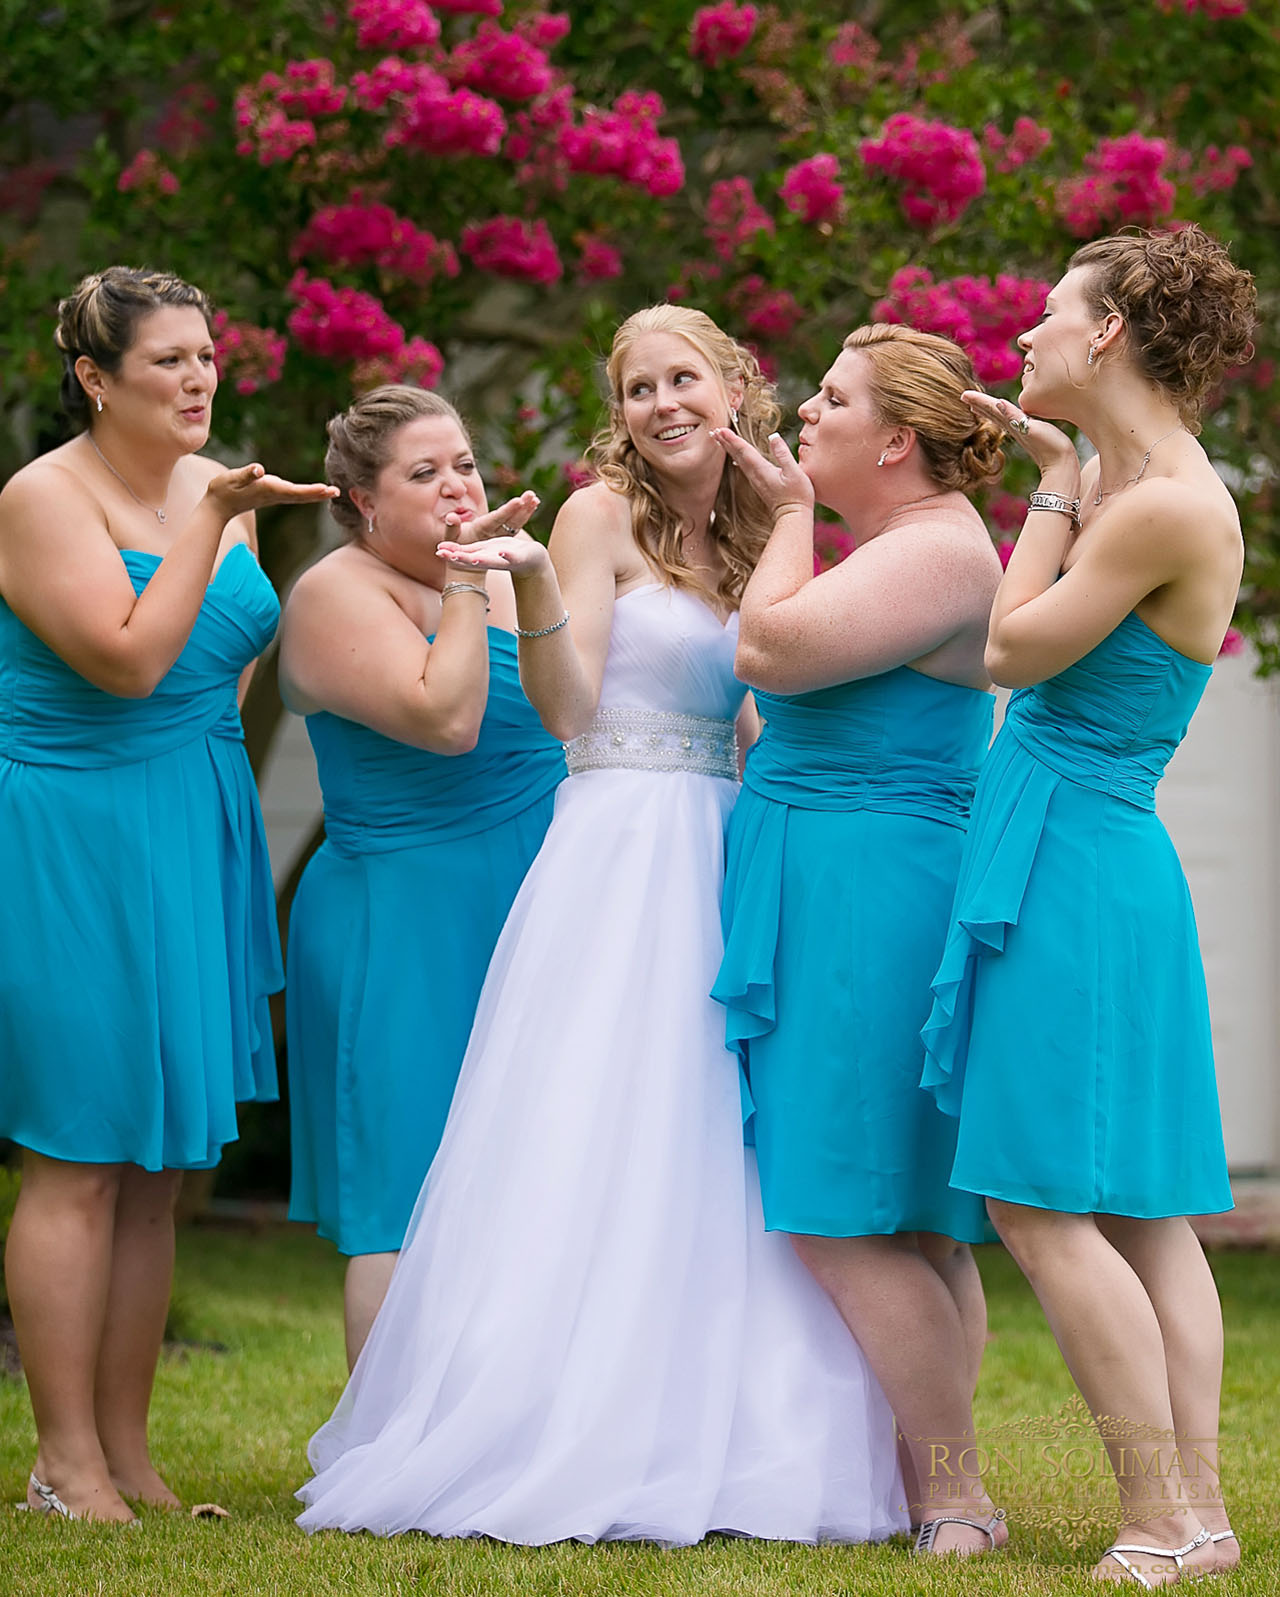 bridesmaids fun photos